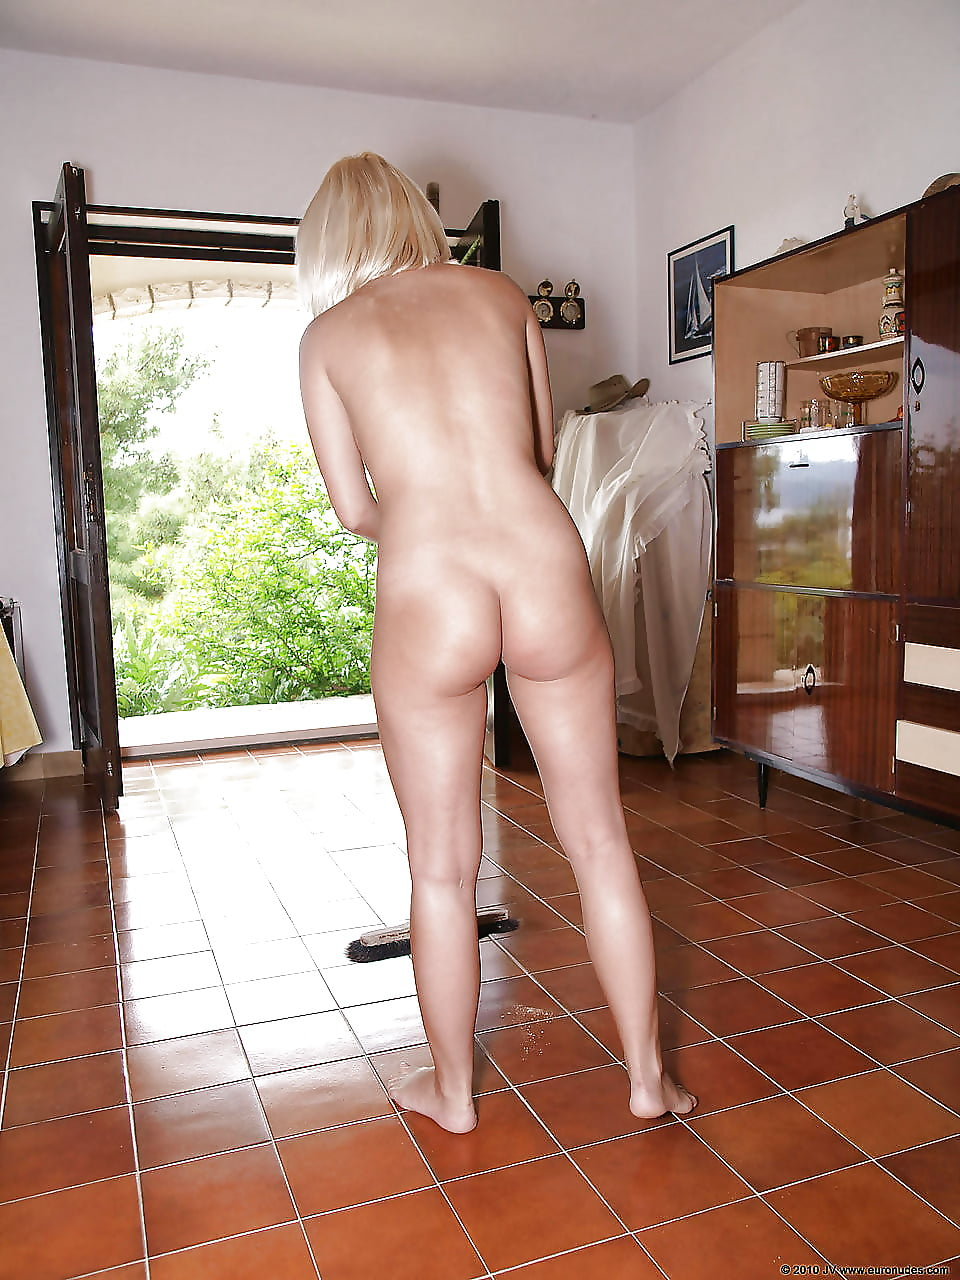 nude-woman-doing-house-work